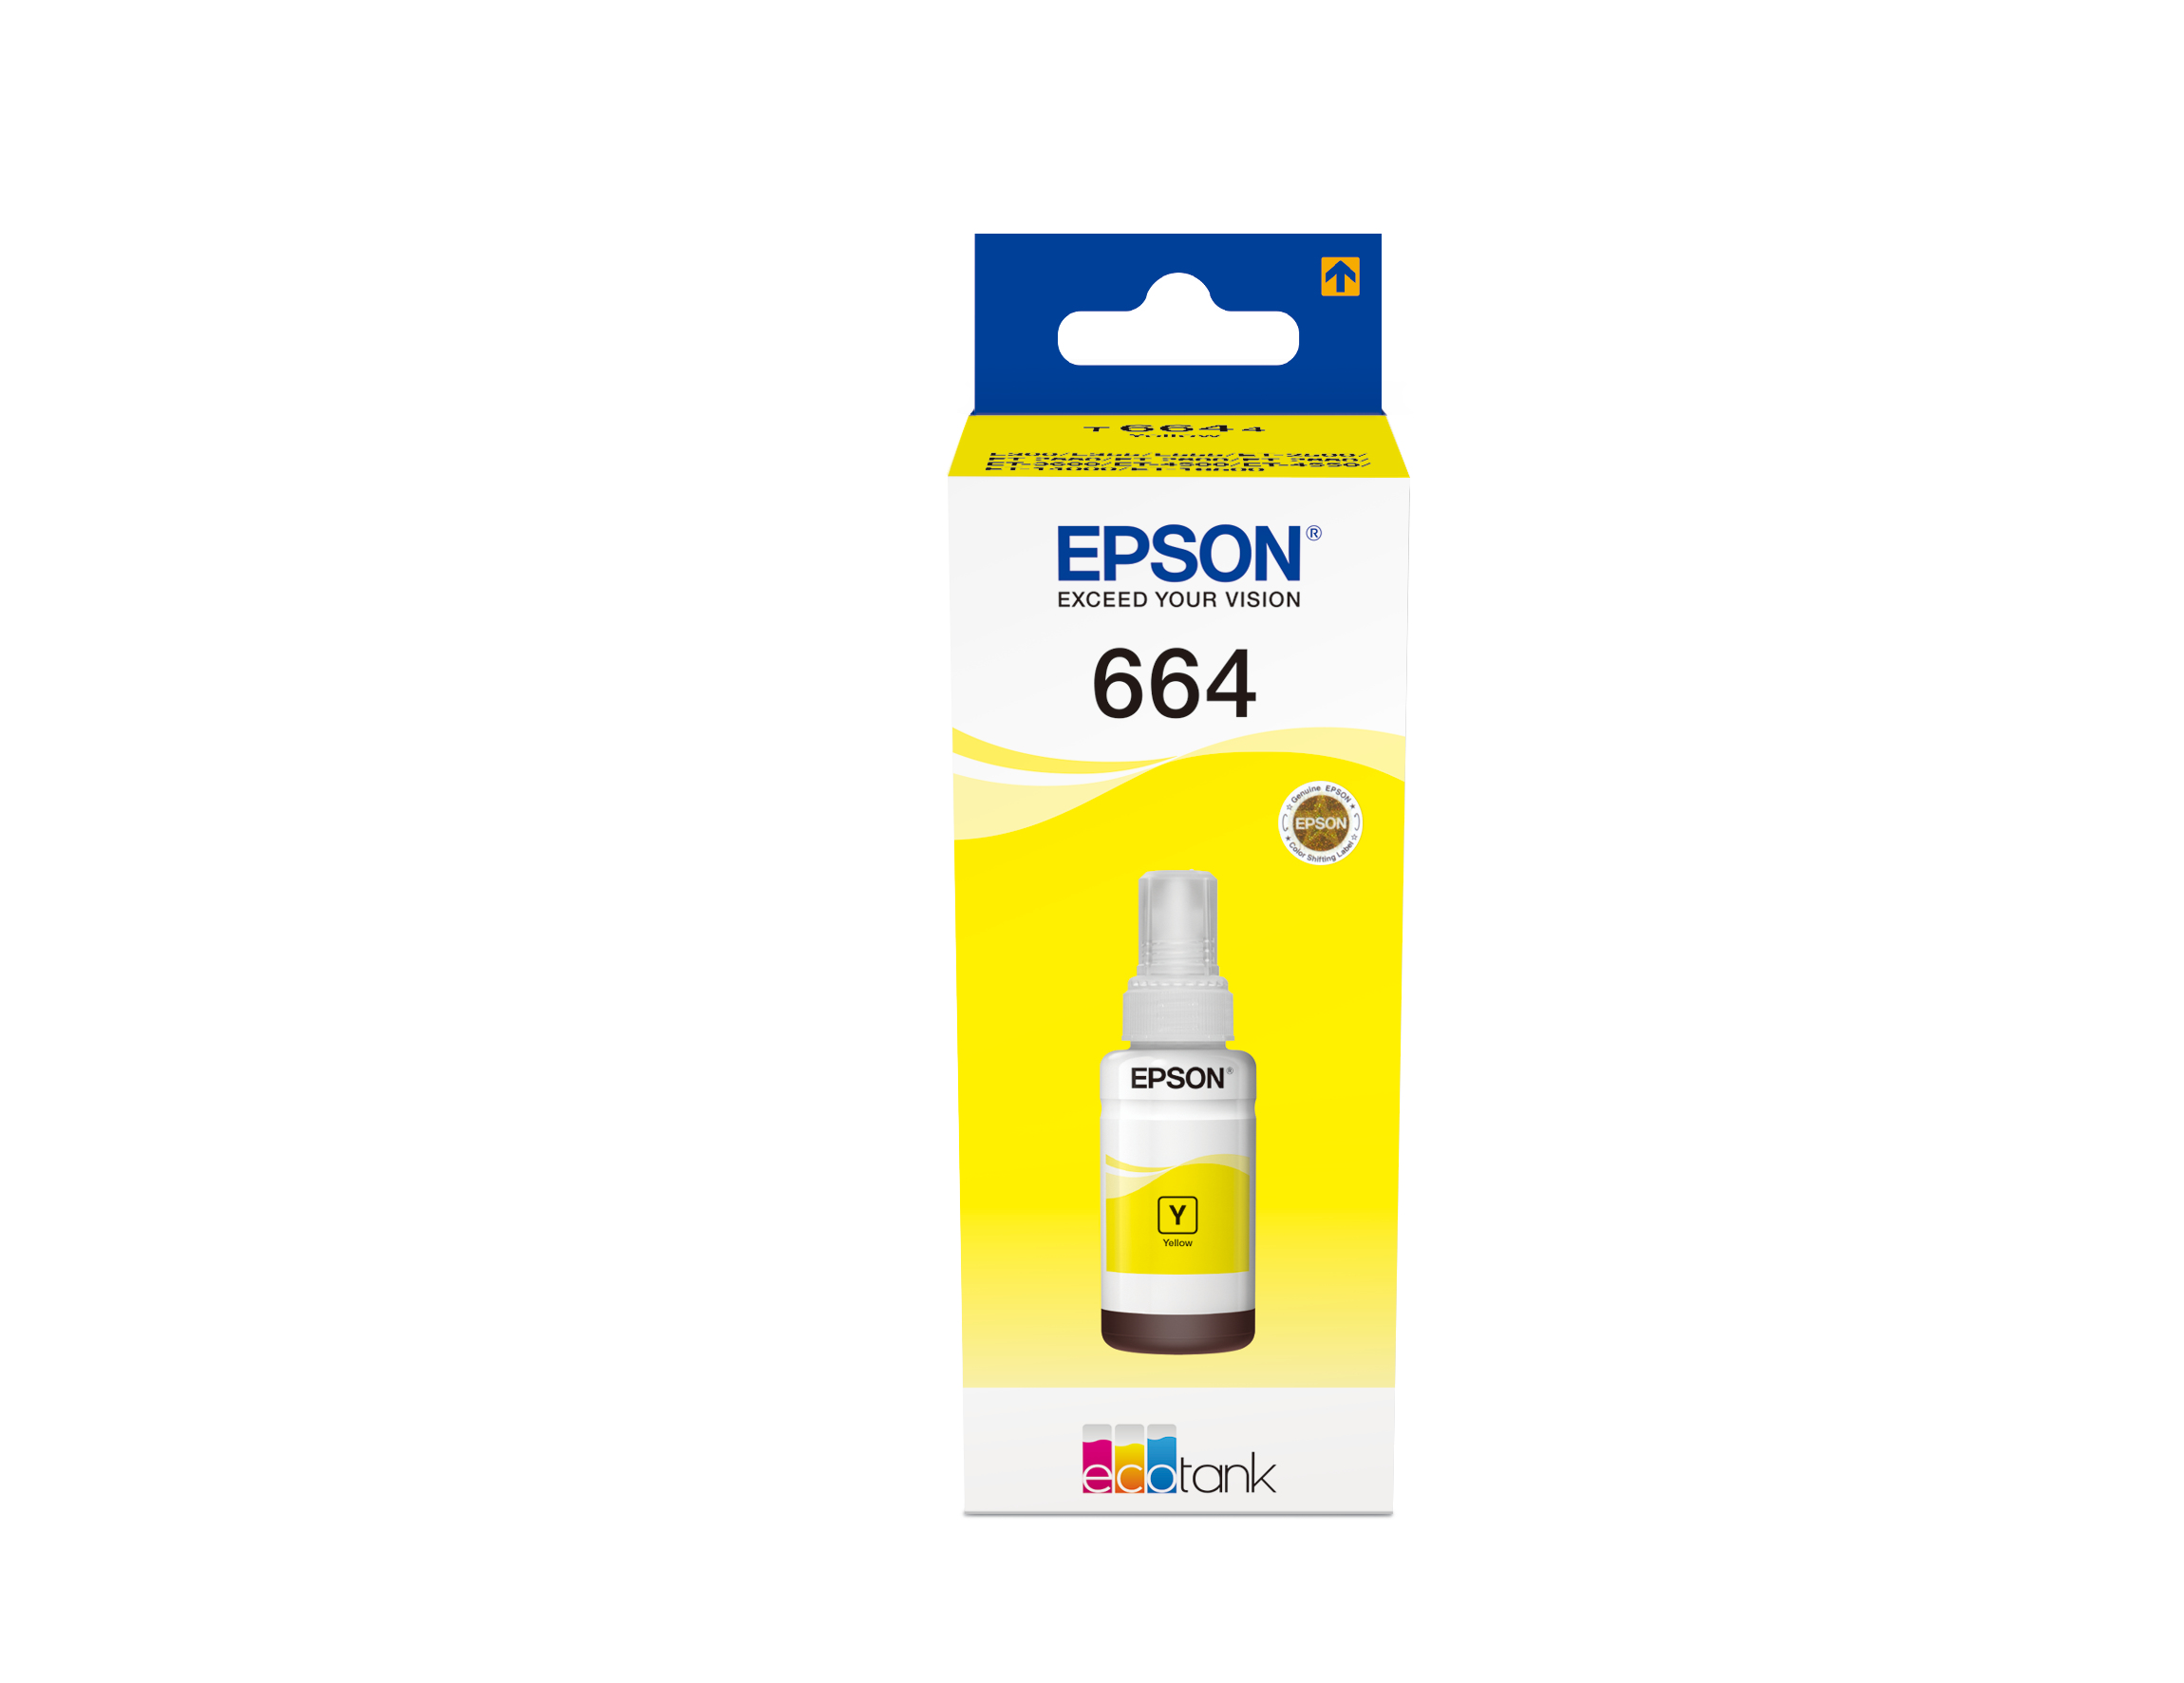 T6642 Yellow Ink Eco Bottle C13t664440 - WC01